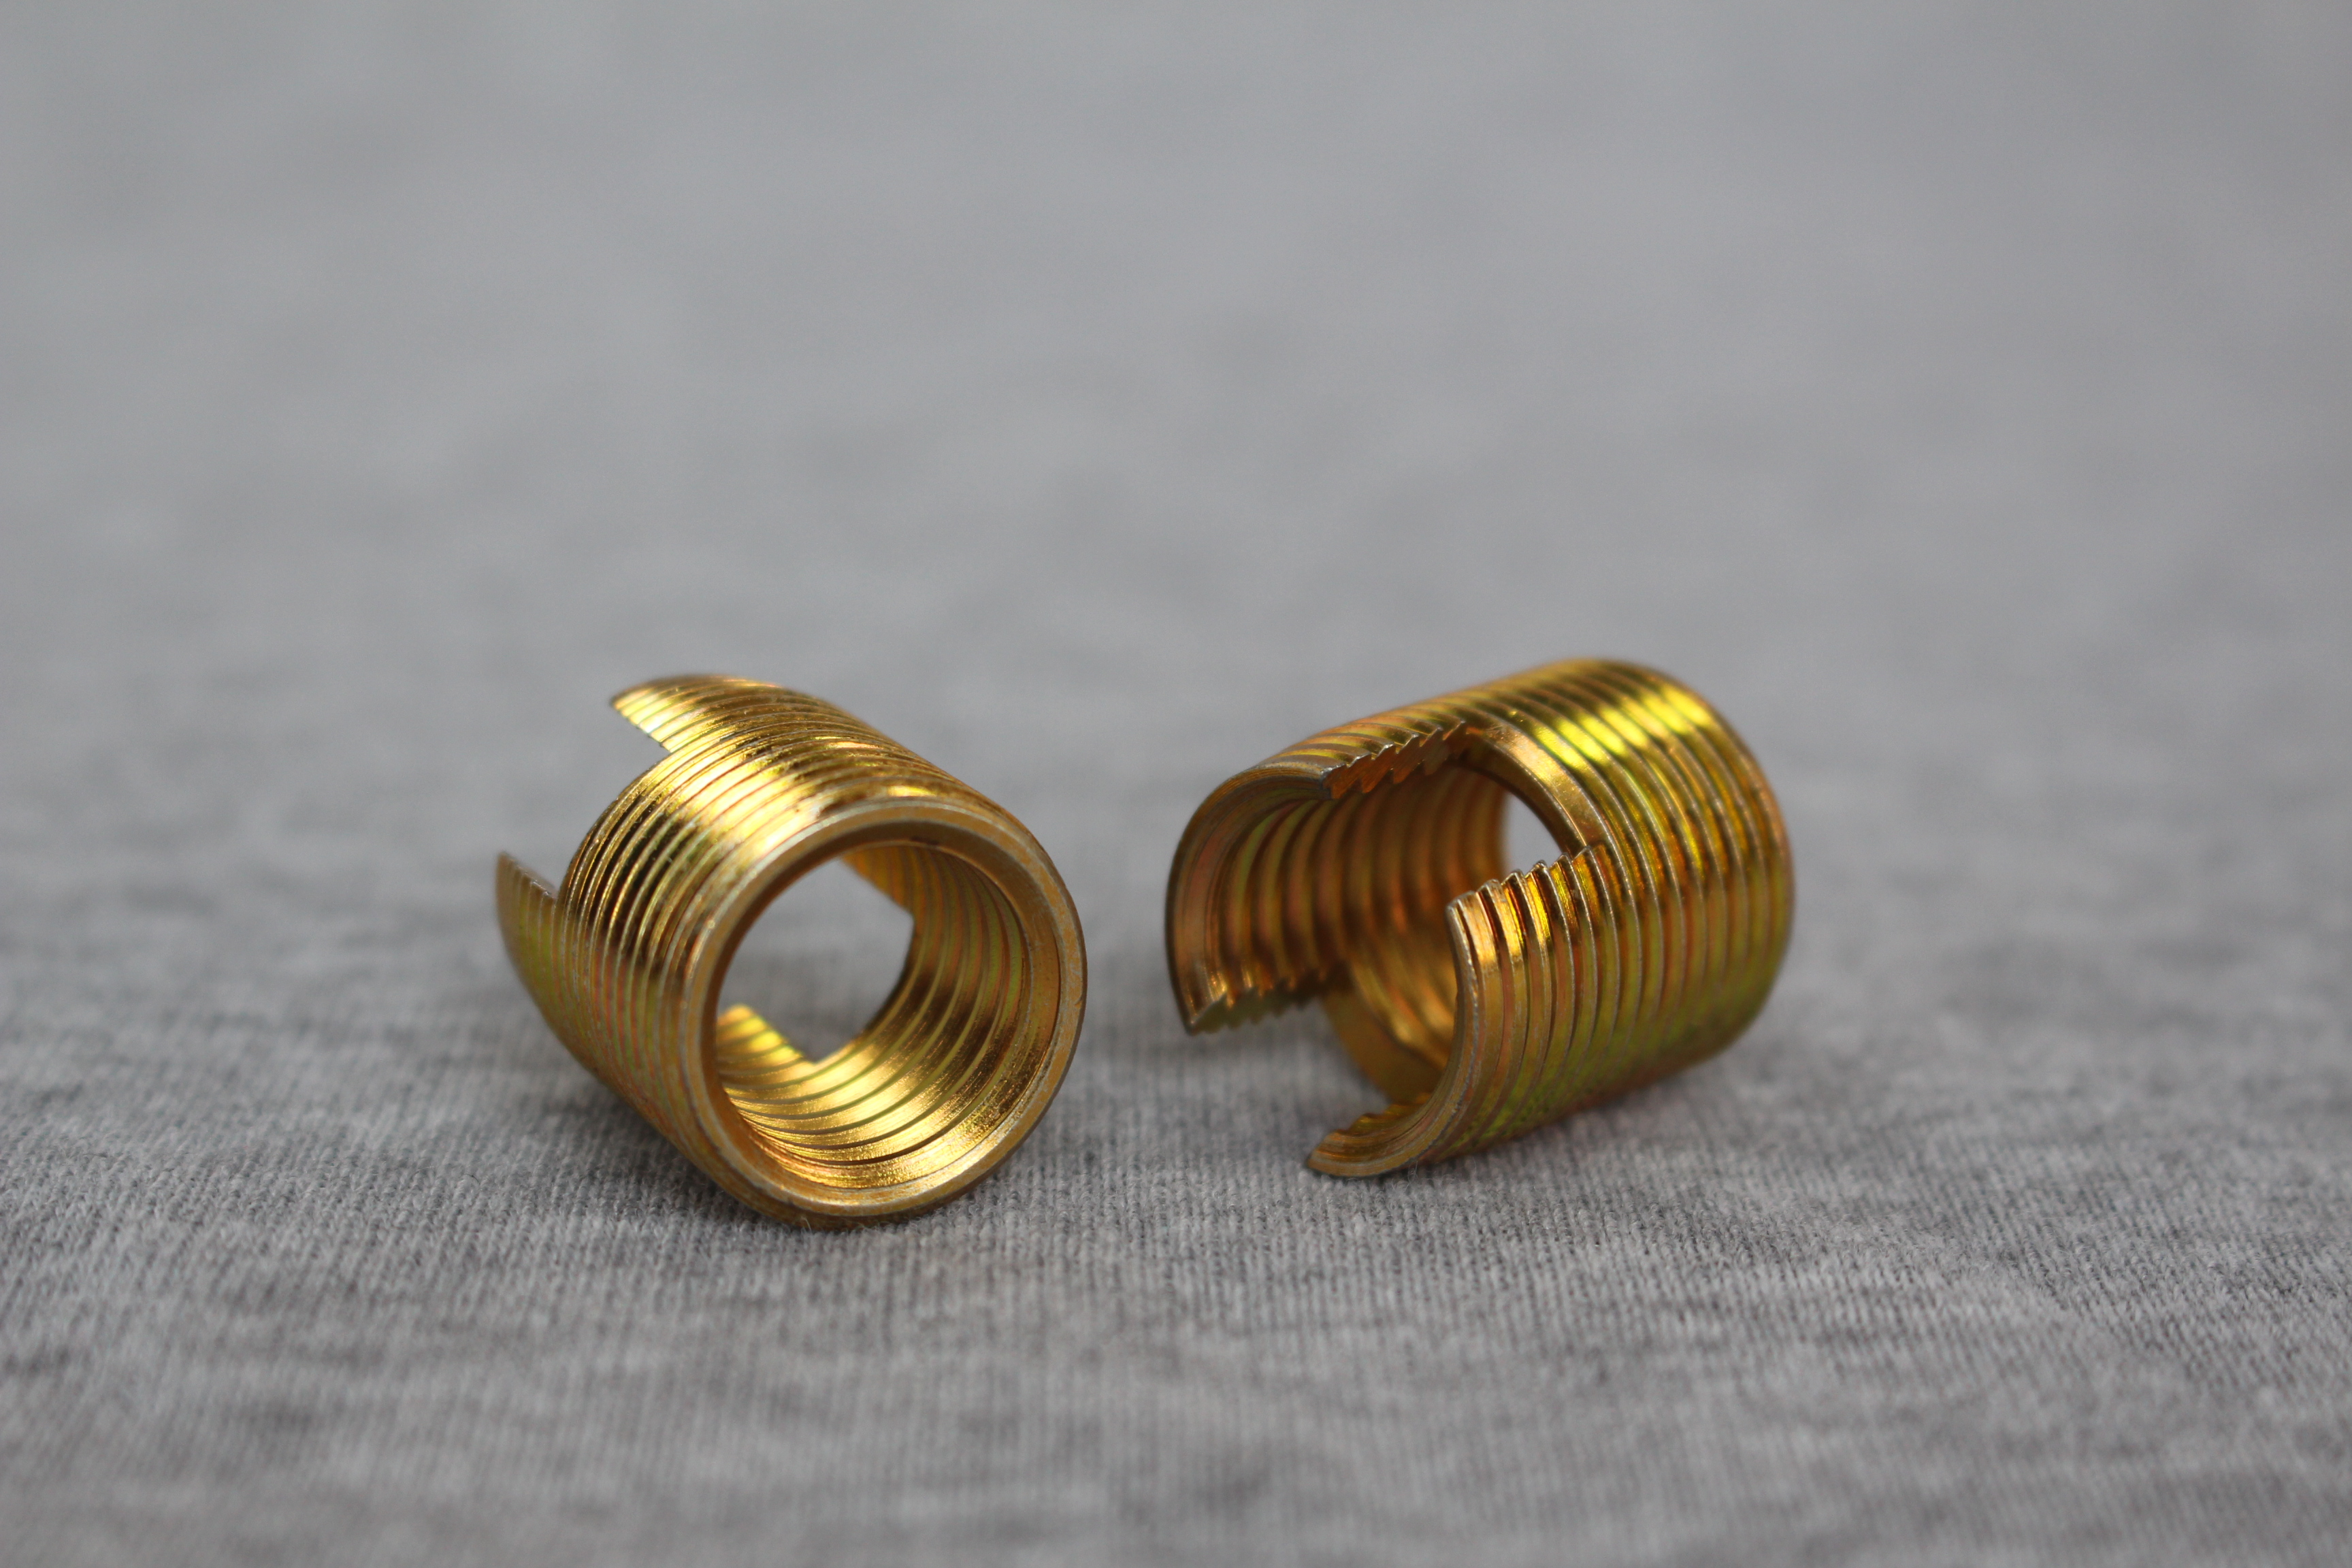 Brass Self Tapping Thread Inserts